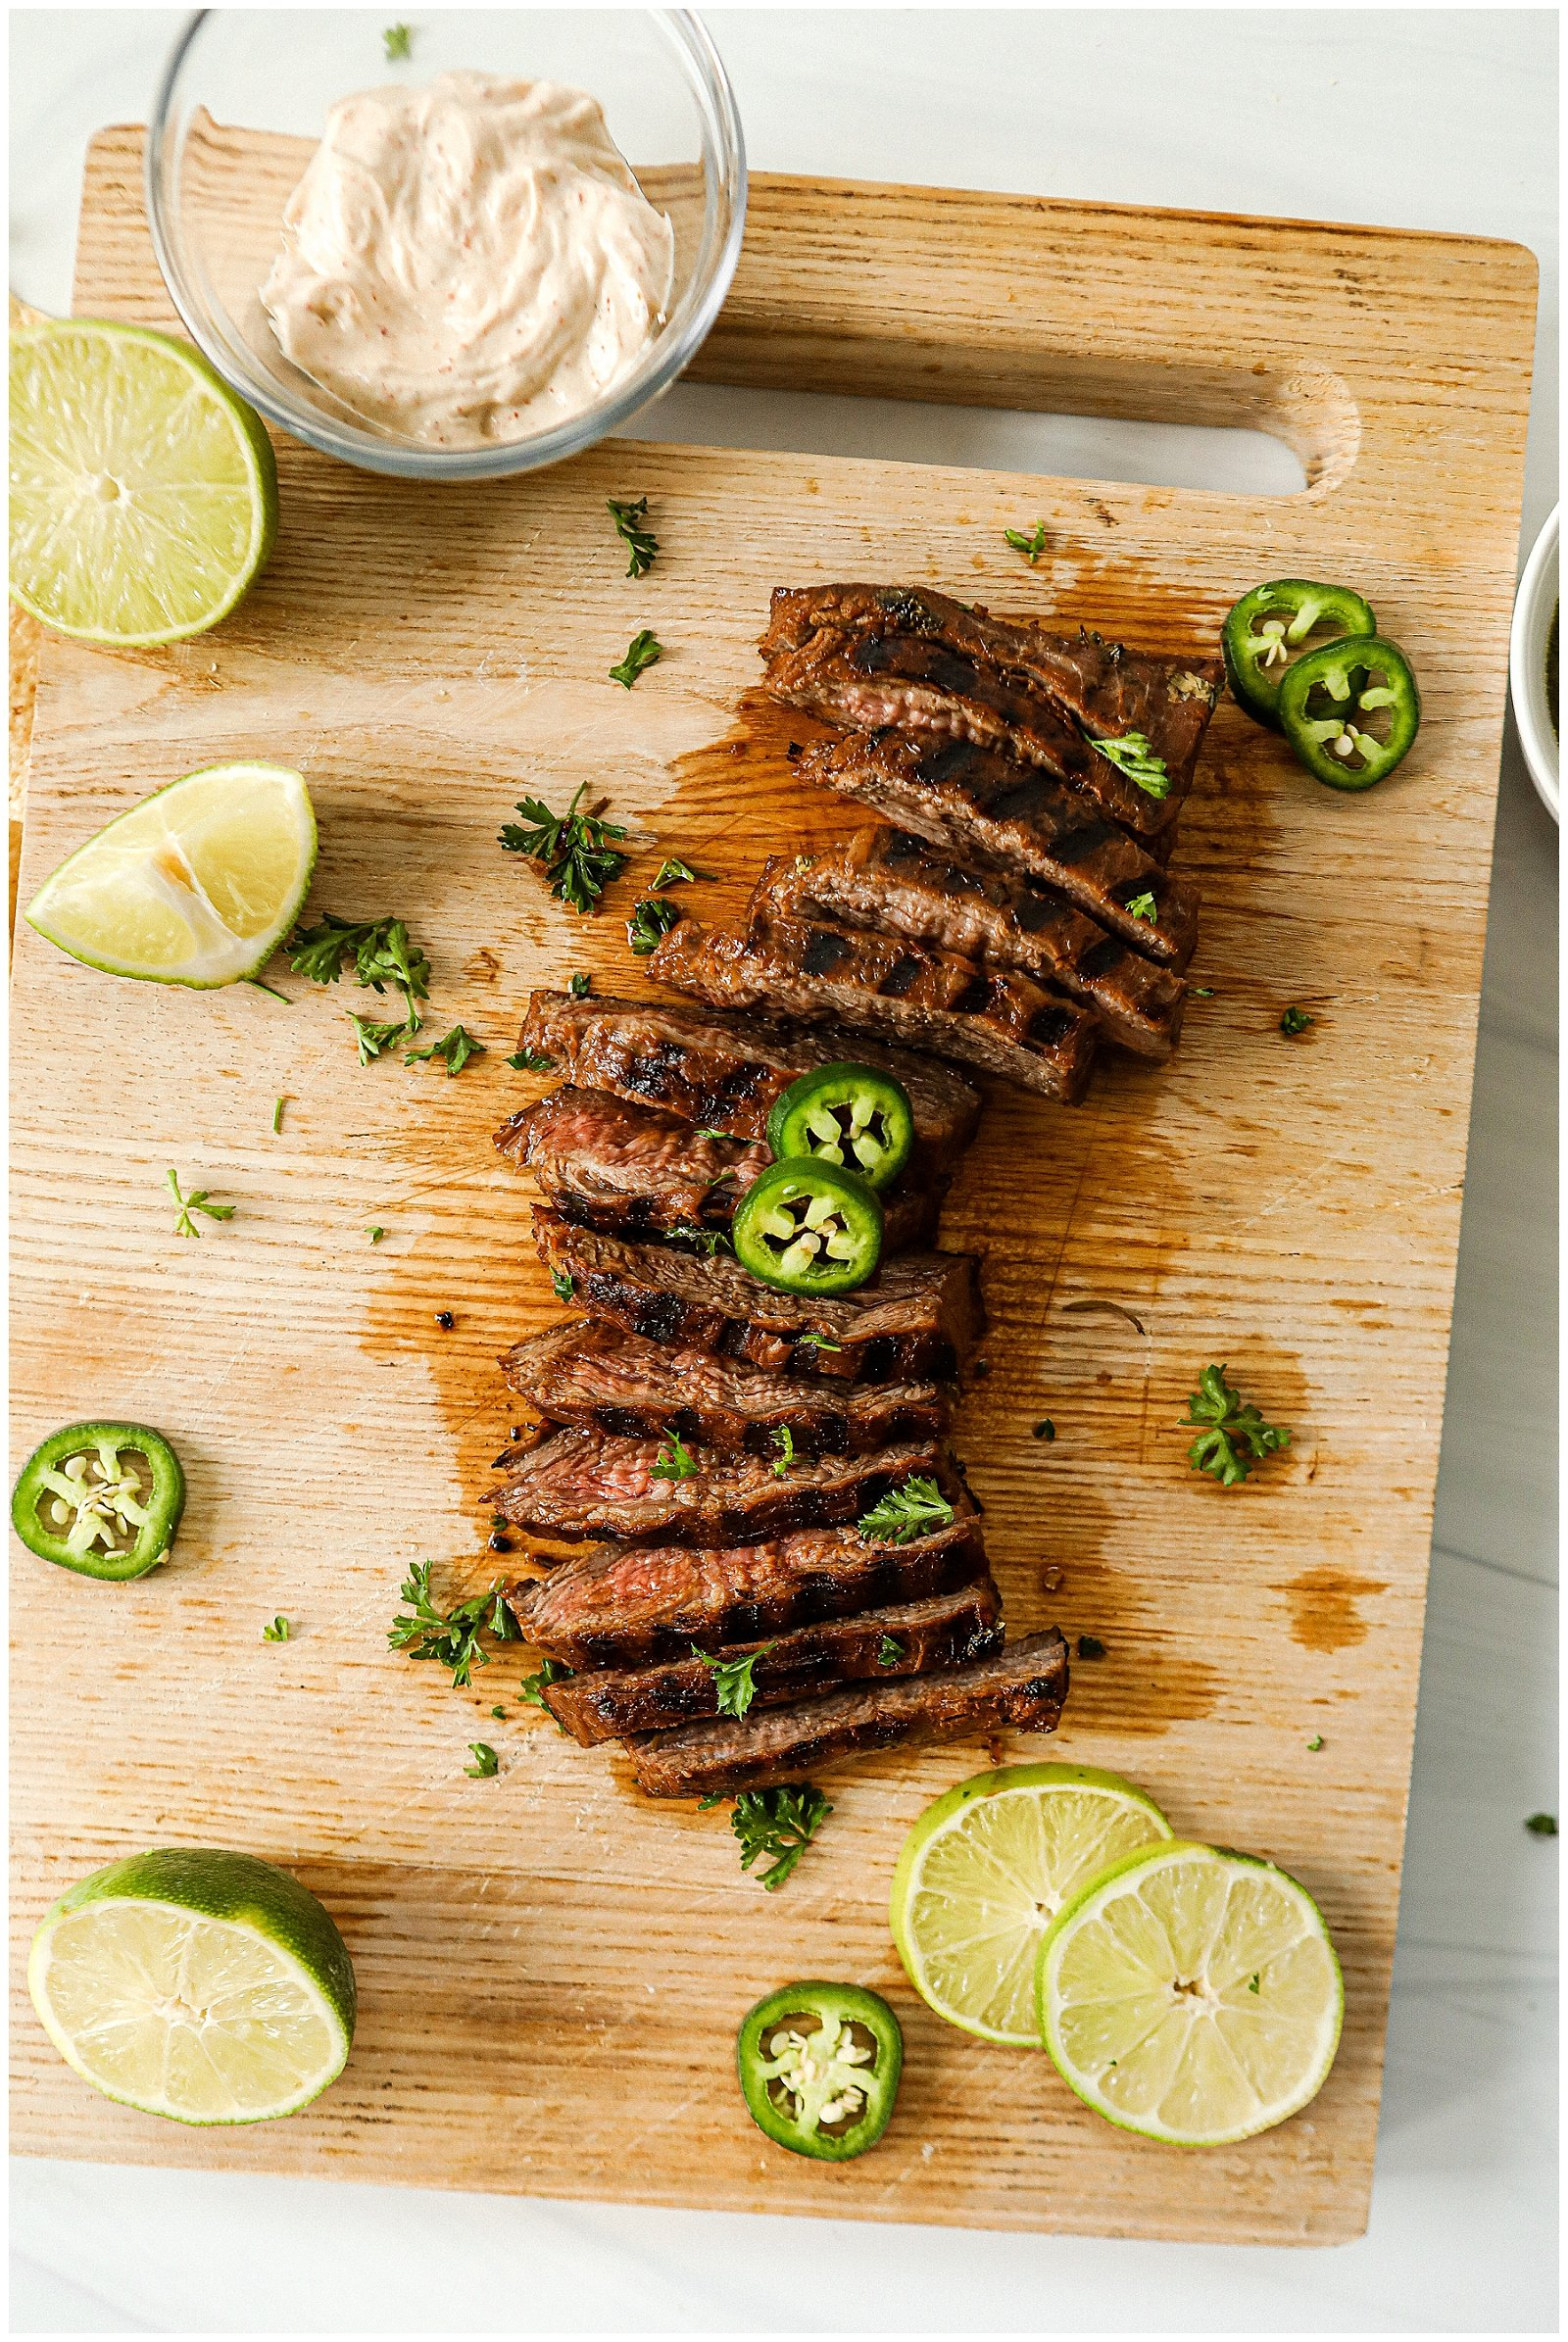 Tequila Lime Flank Steak on the grill